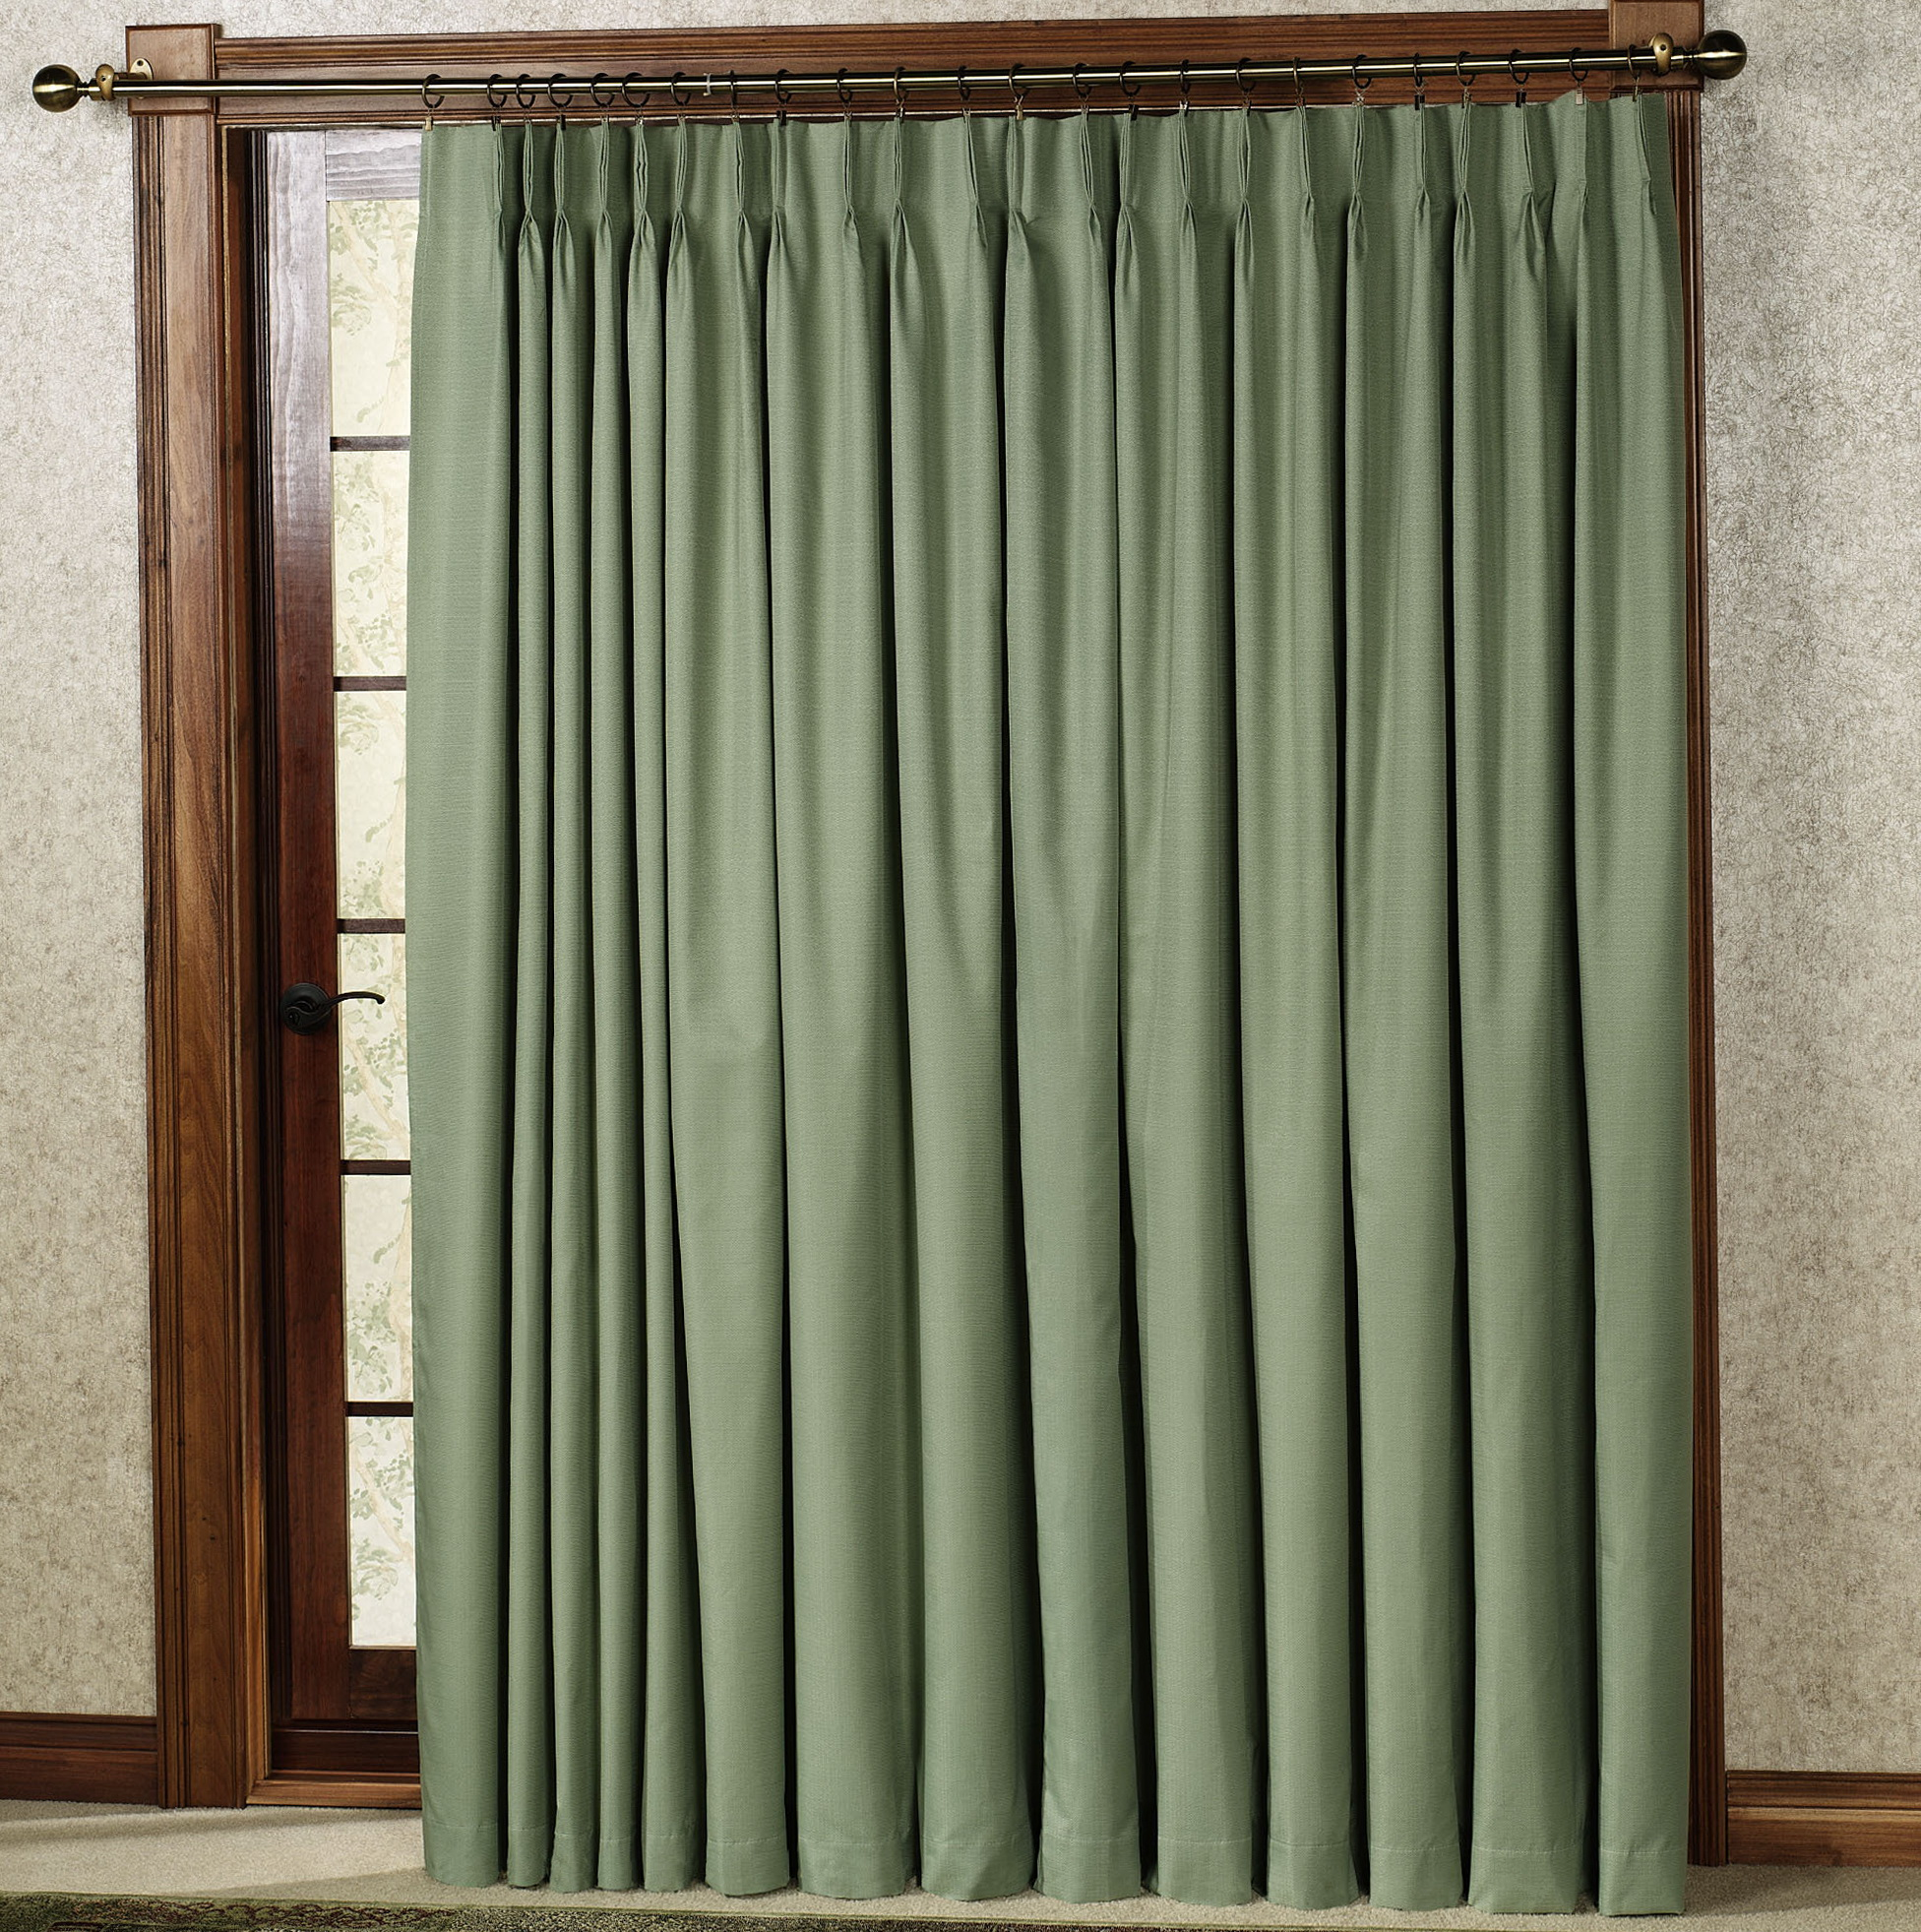 Patio Door Curtains Pinch Pleat